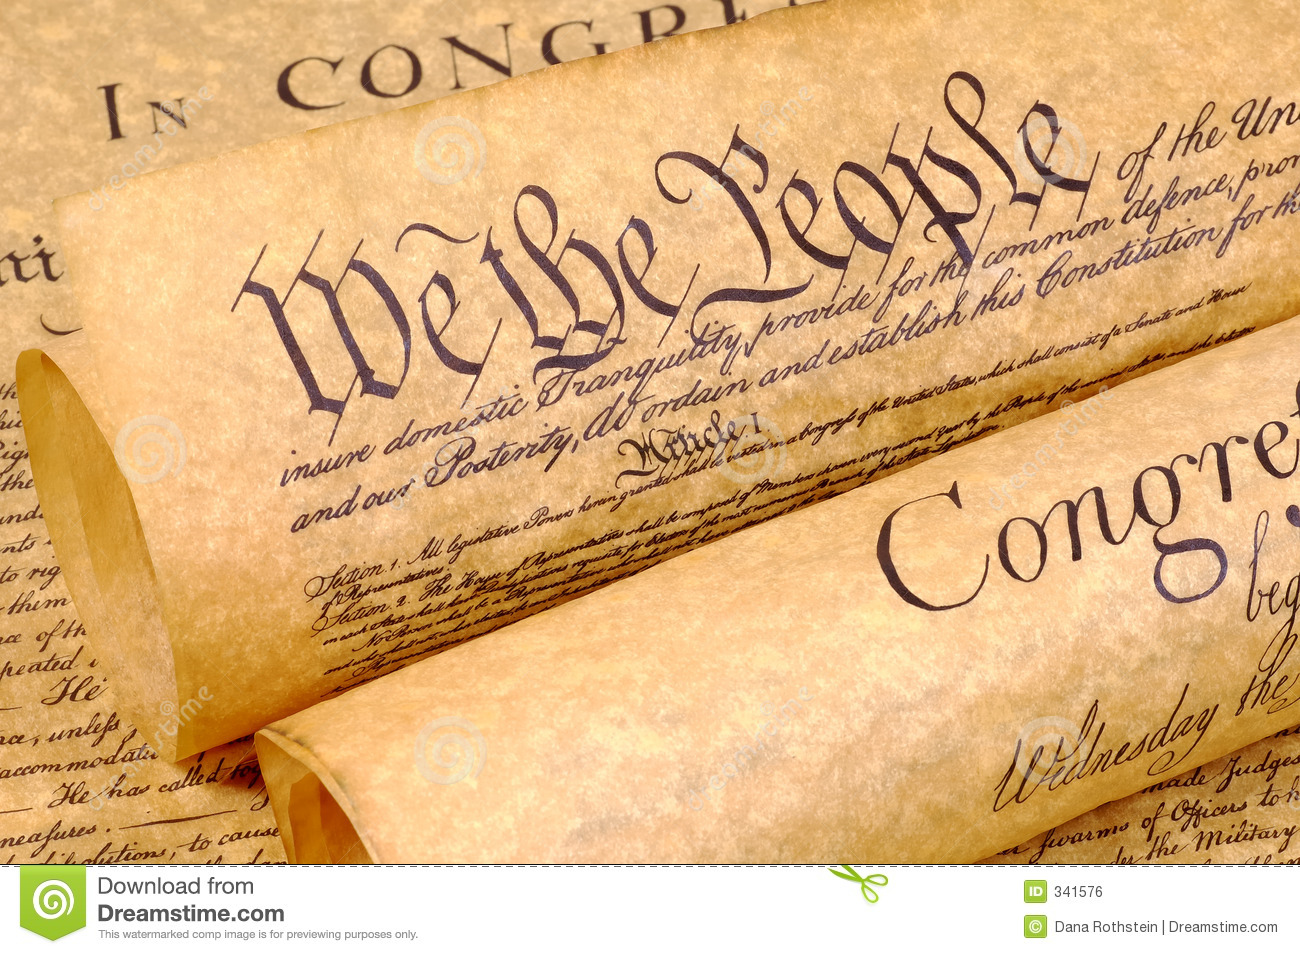 declaration of independence clipart clipart suggest Declaration of Independence Document declaration of independence clip art free